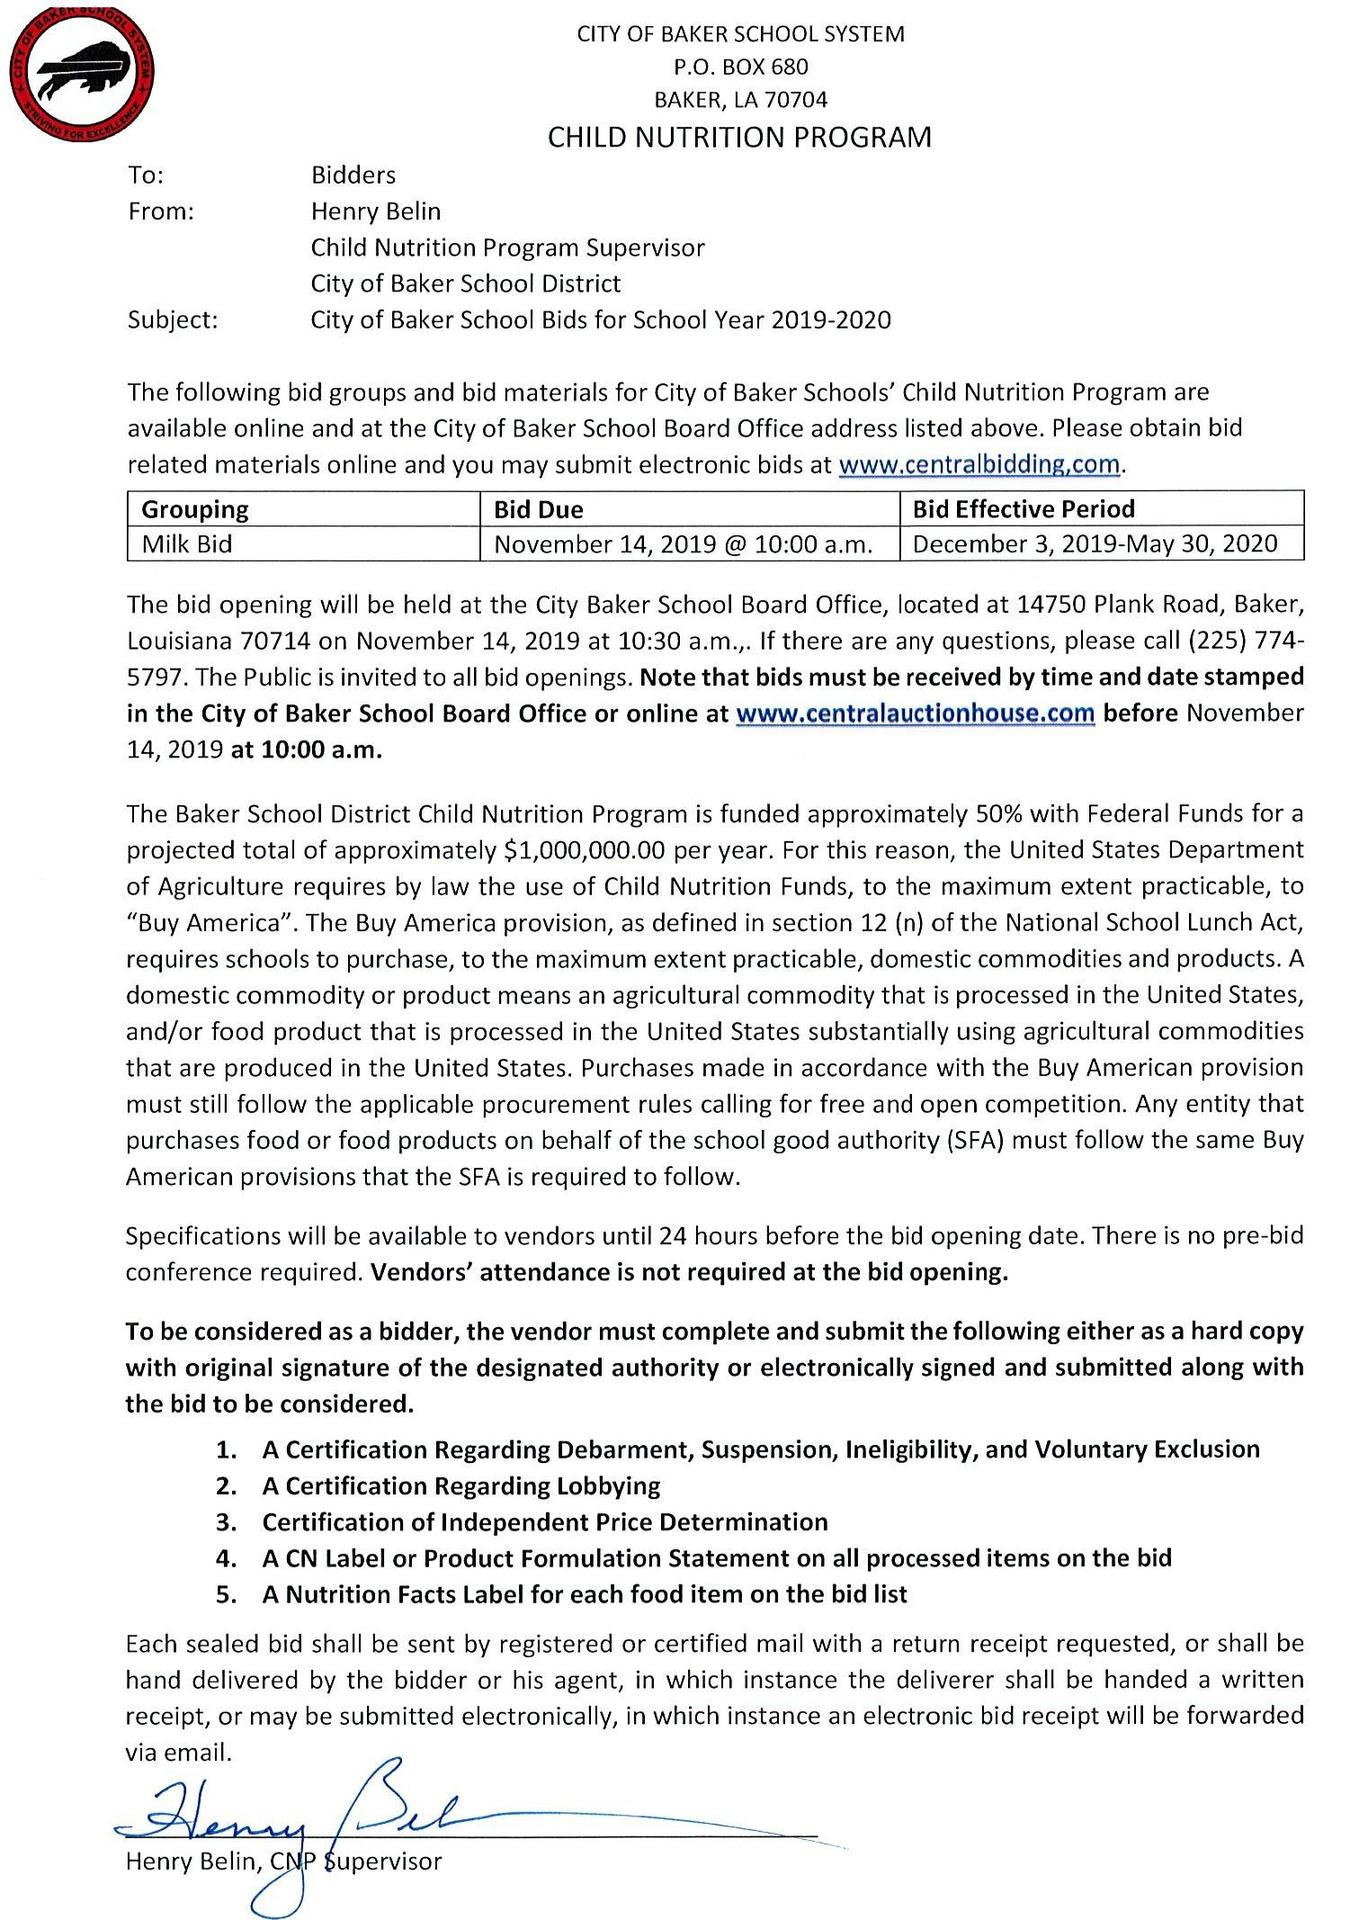 copy of letter to bidders for milk